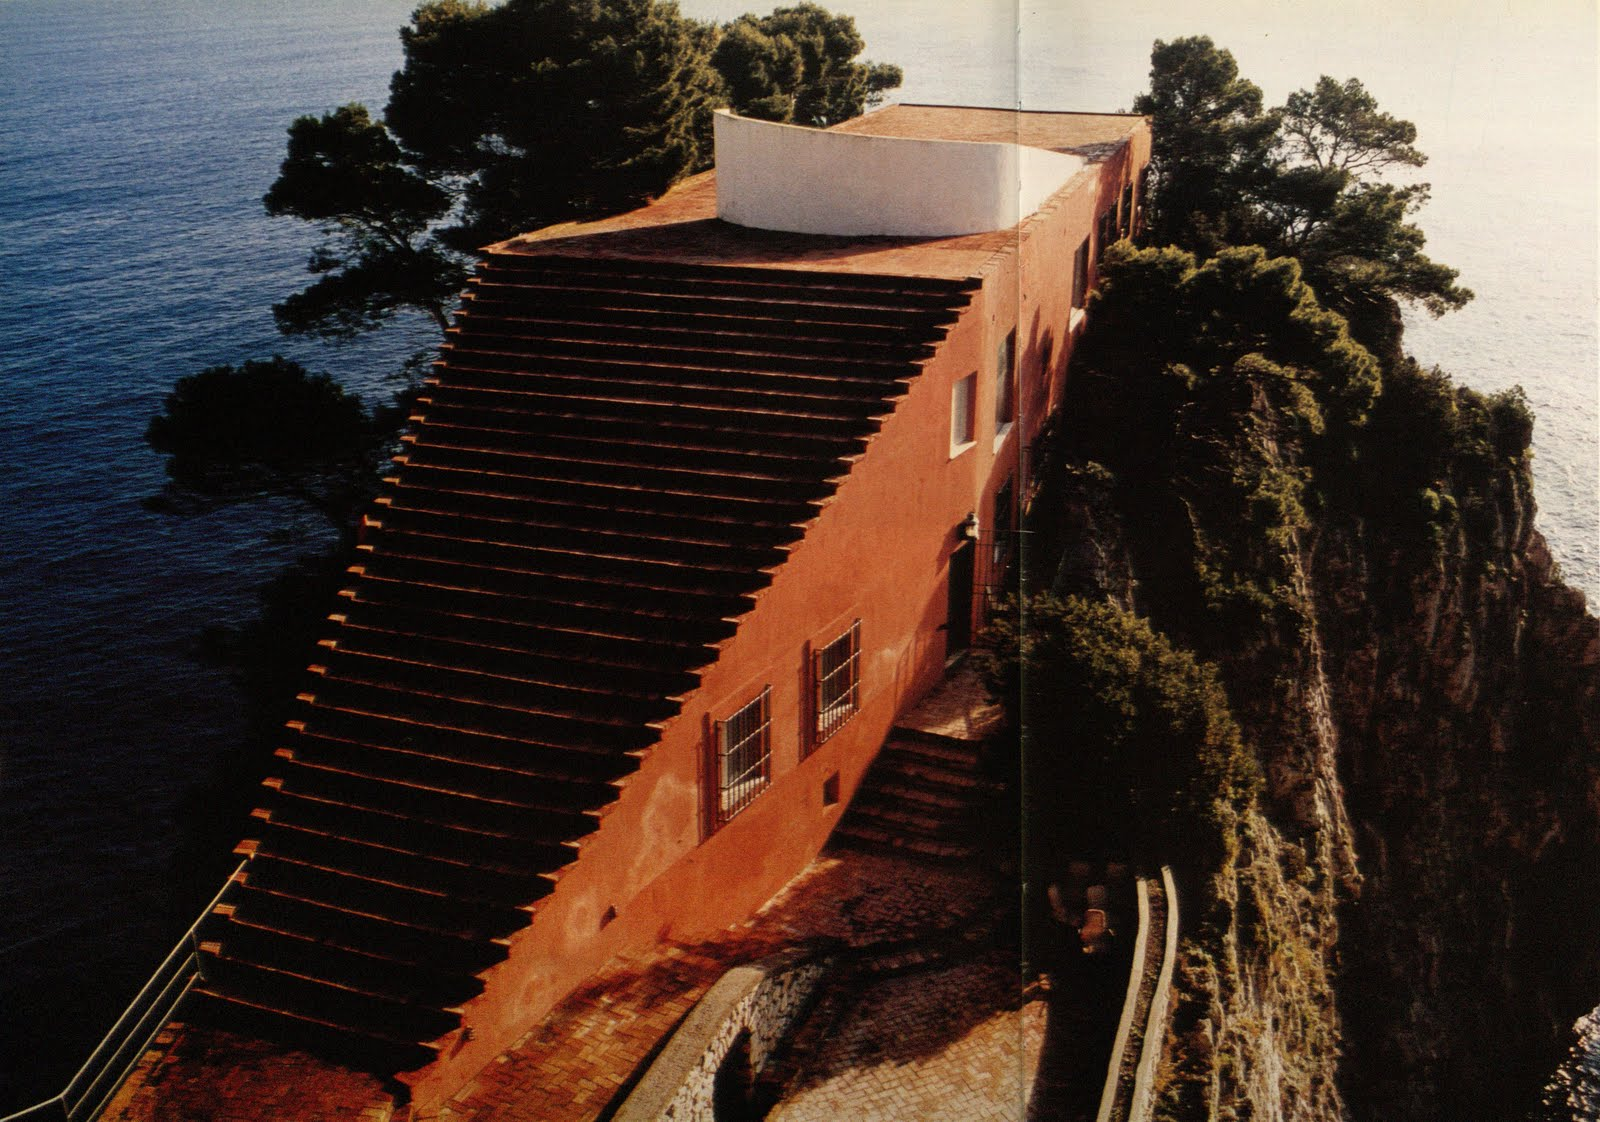 modern like me the casa malaparte essay Find great deals for malaparte : a house like me by michael and writers to unlock the meanings and mysteries behind casa malaparte provocative essays.